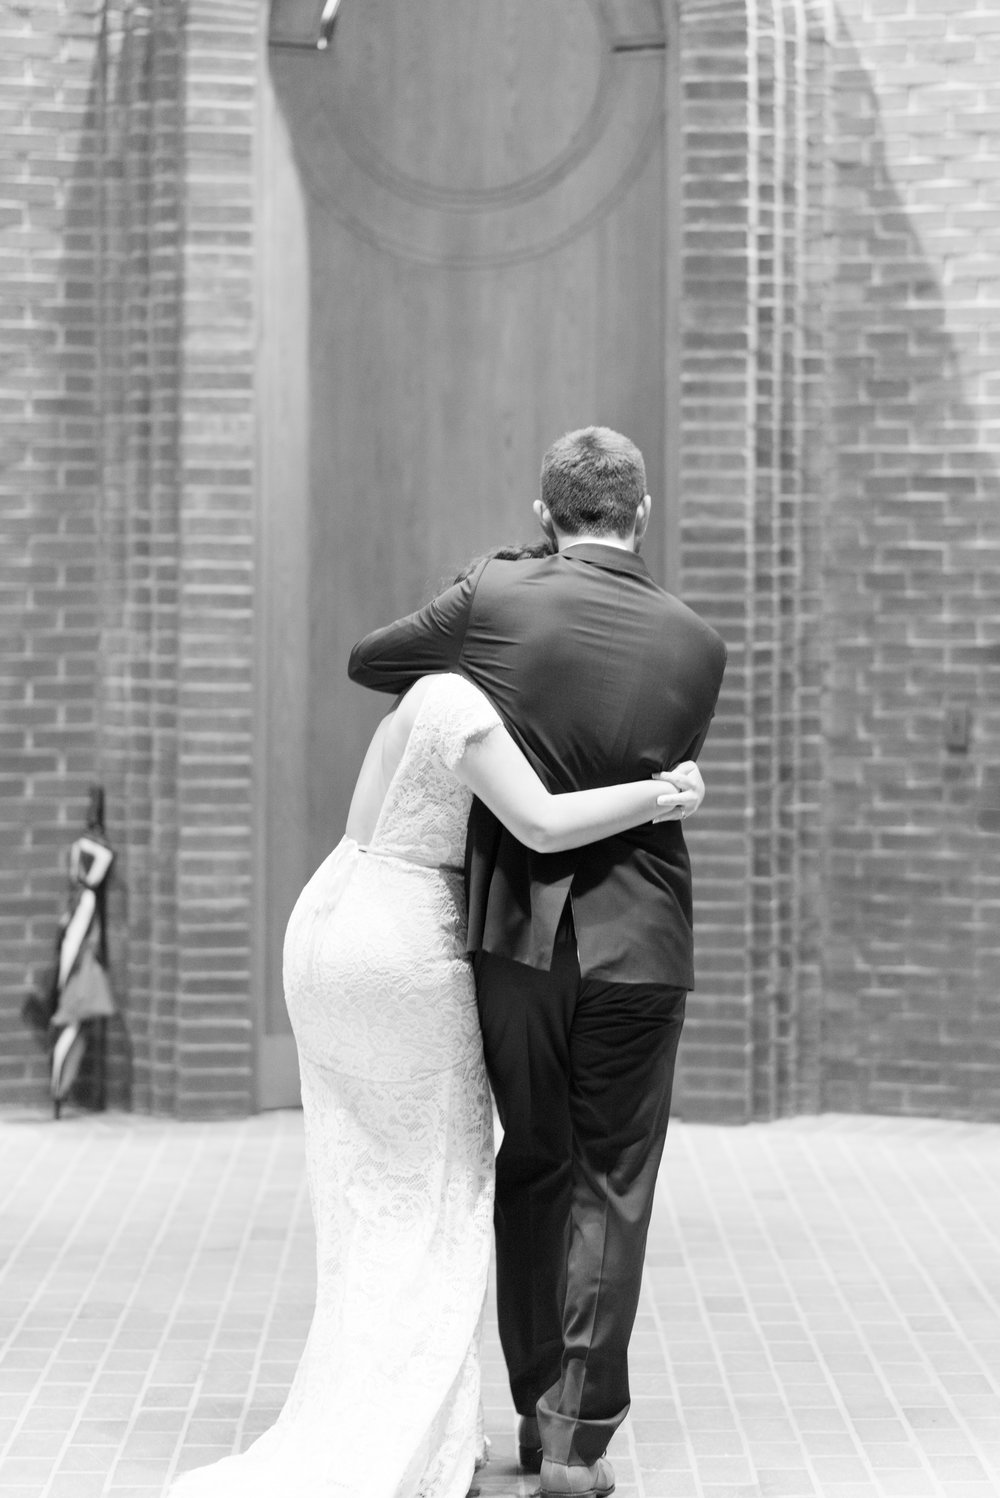 the exit; - They embraced each other as they exited the ceremony, like they both felt they had won the grand prize.